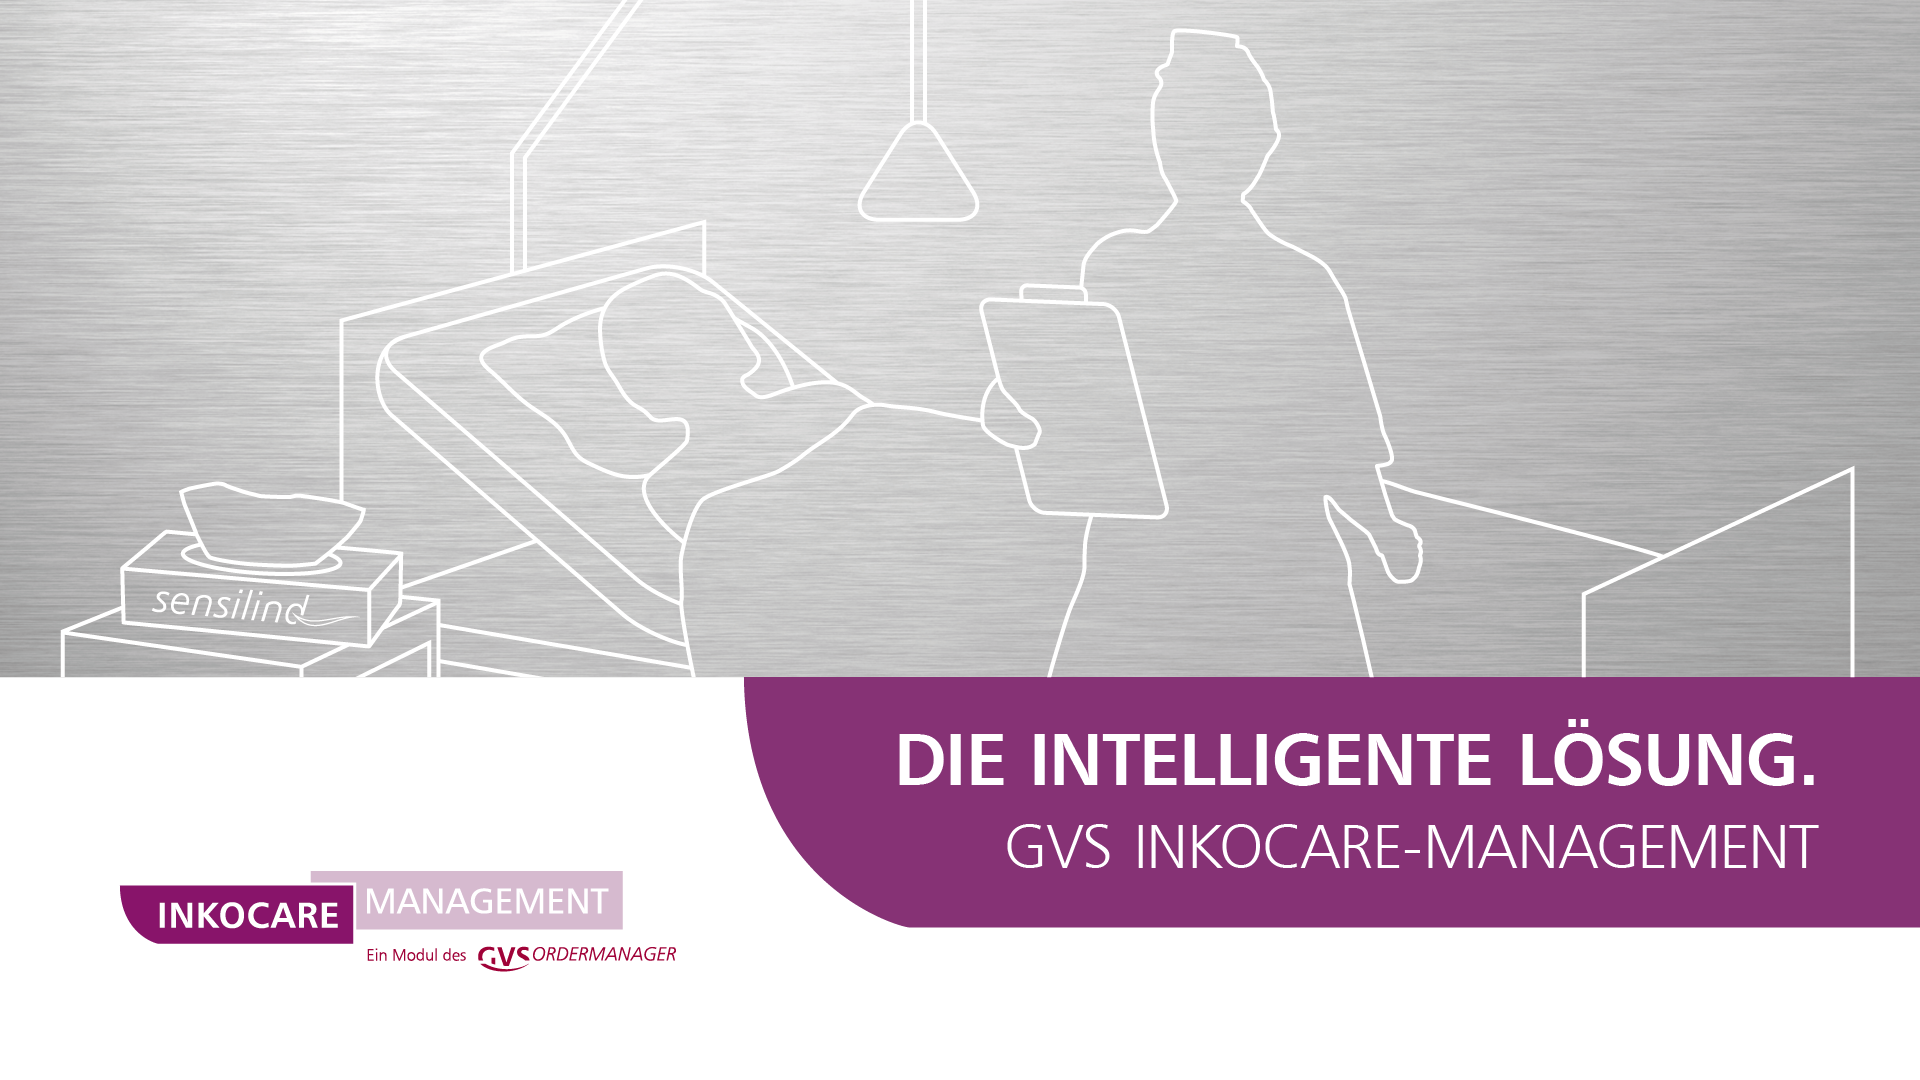 GVS Inkocare Management